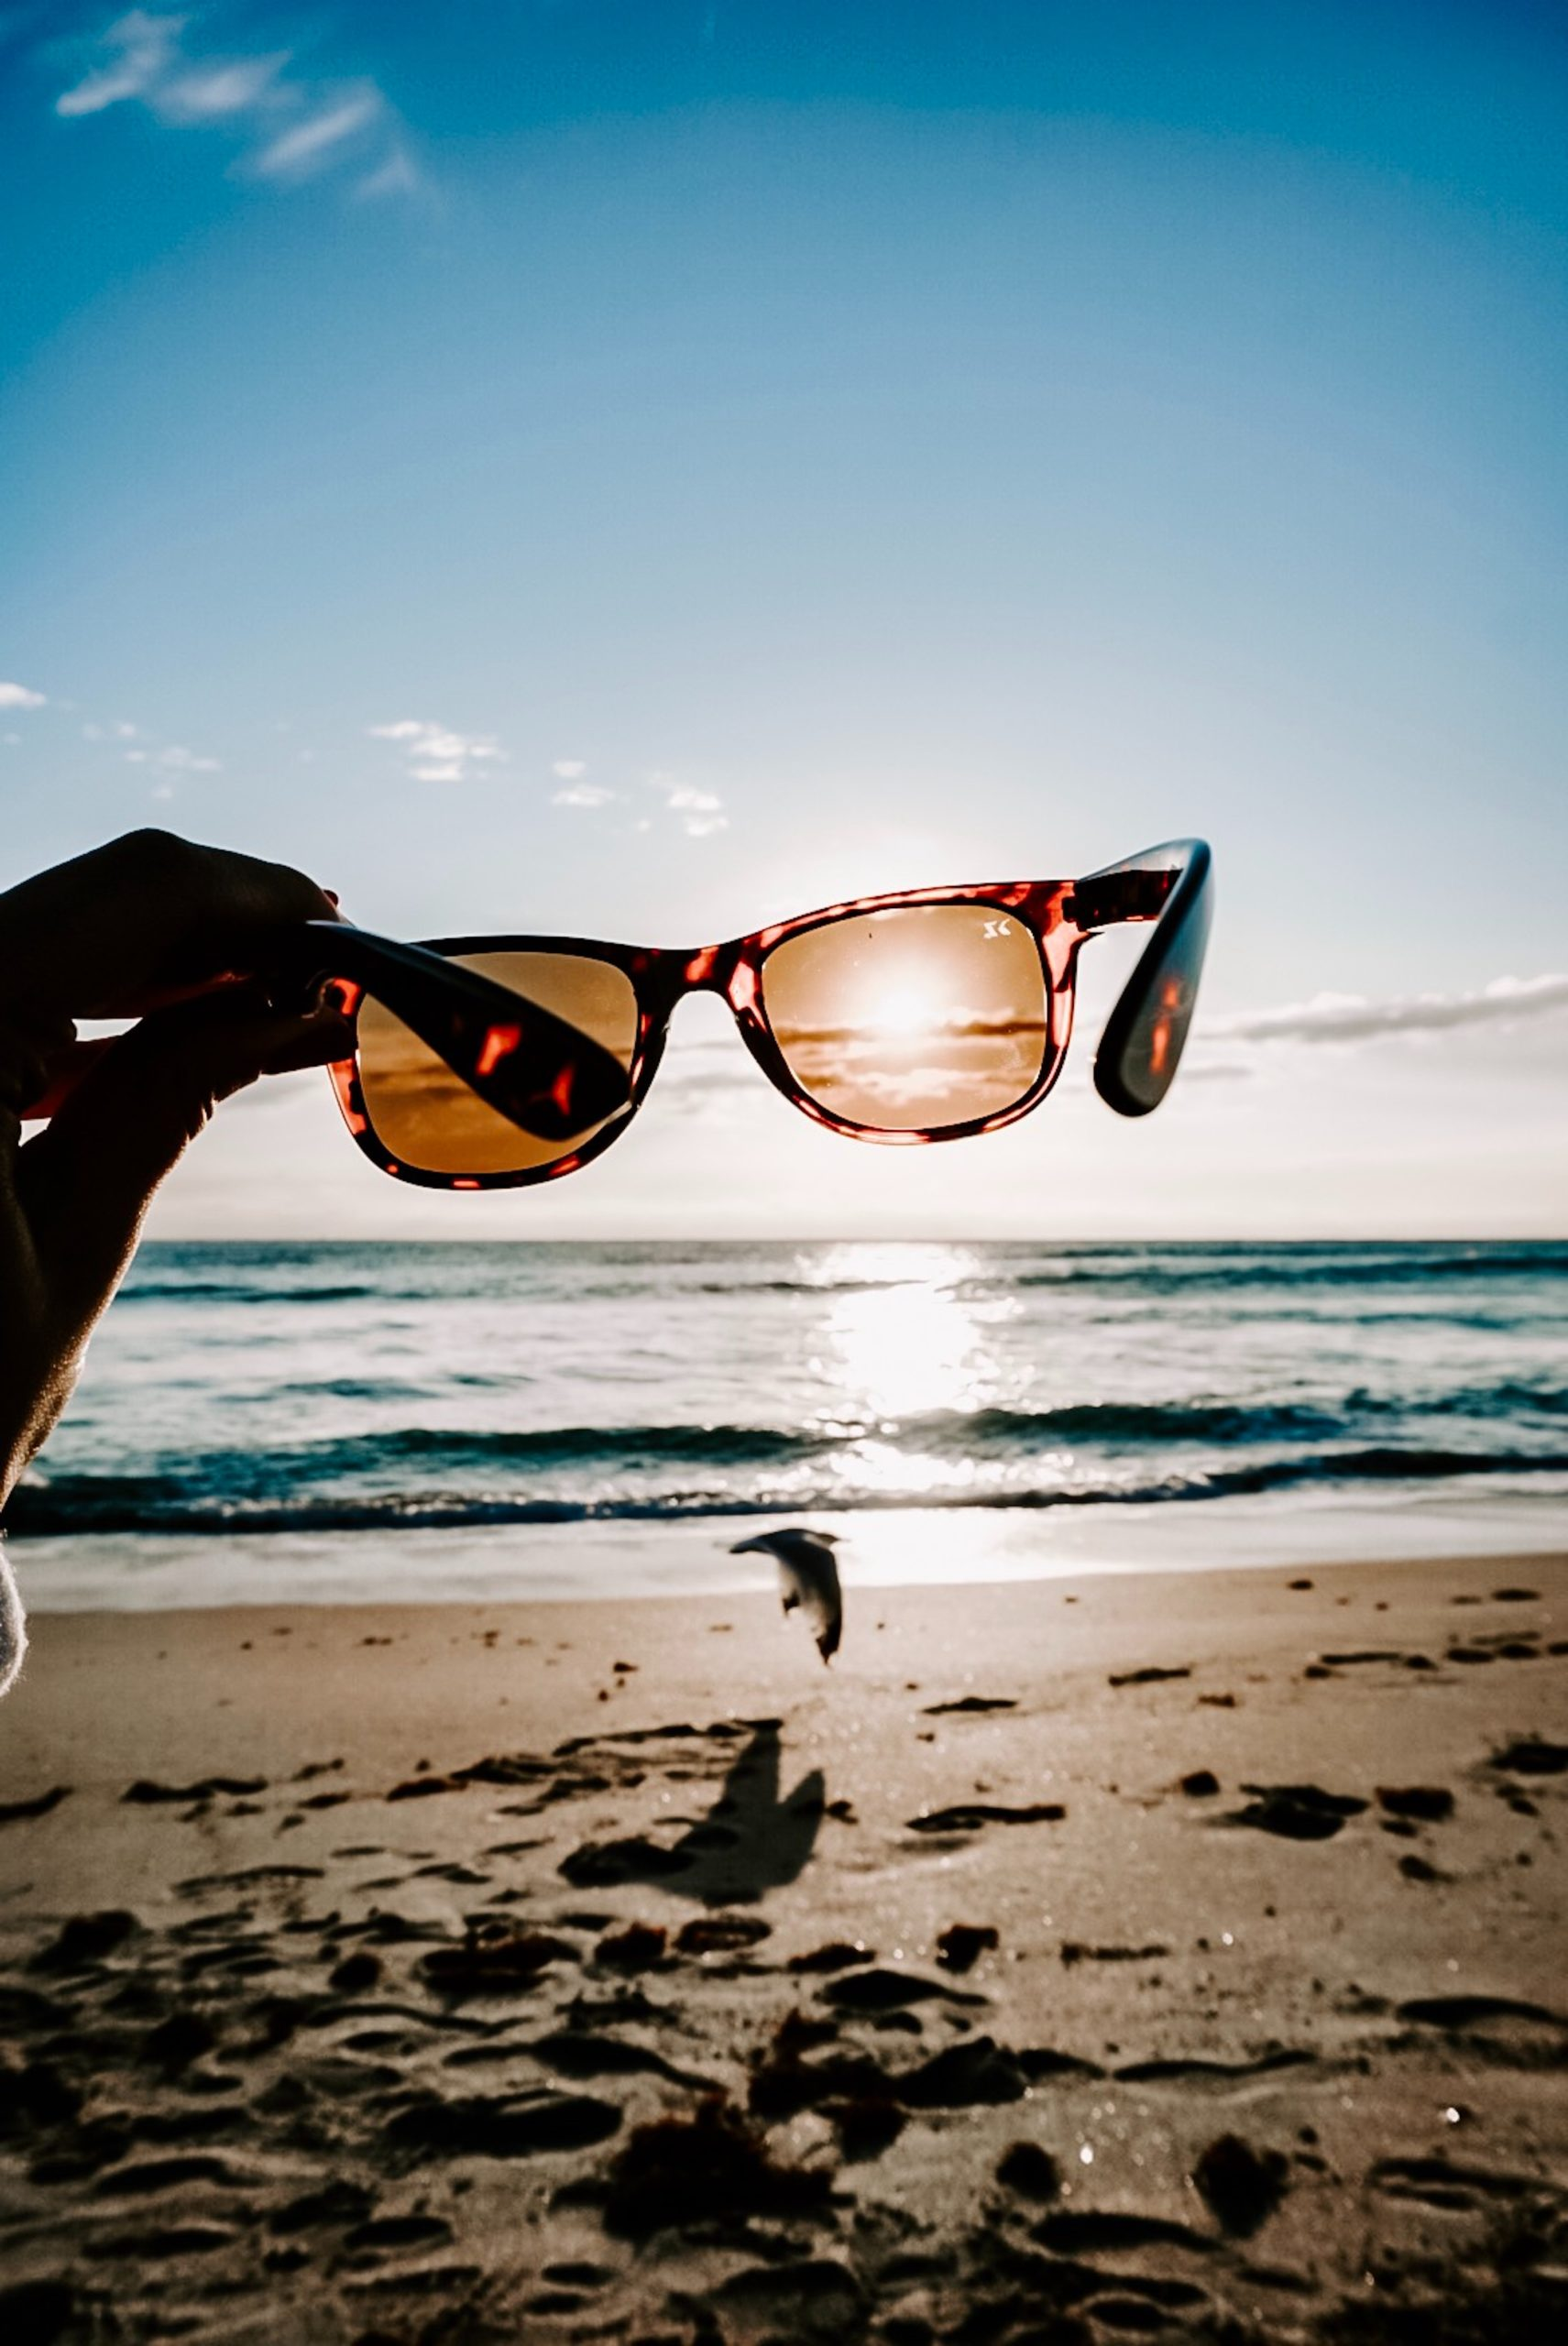 person holding sunglasses on beach during daytime